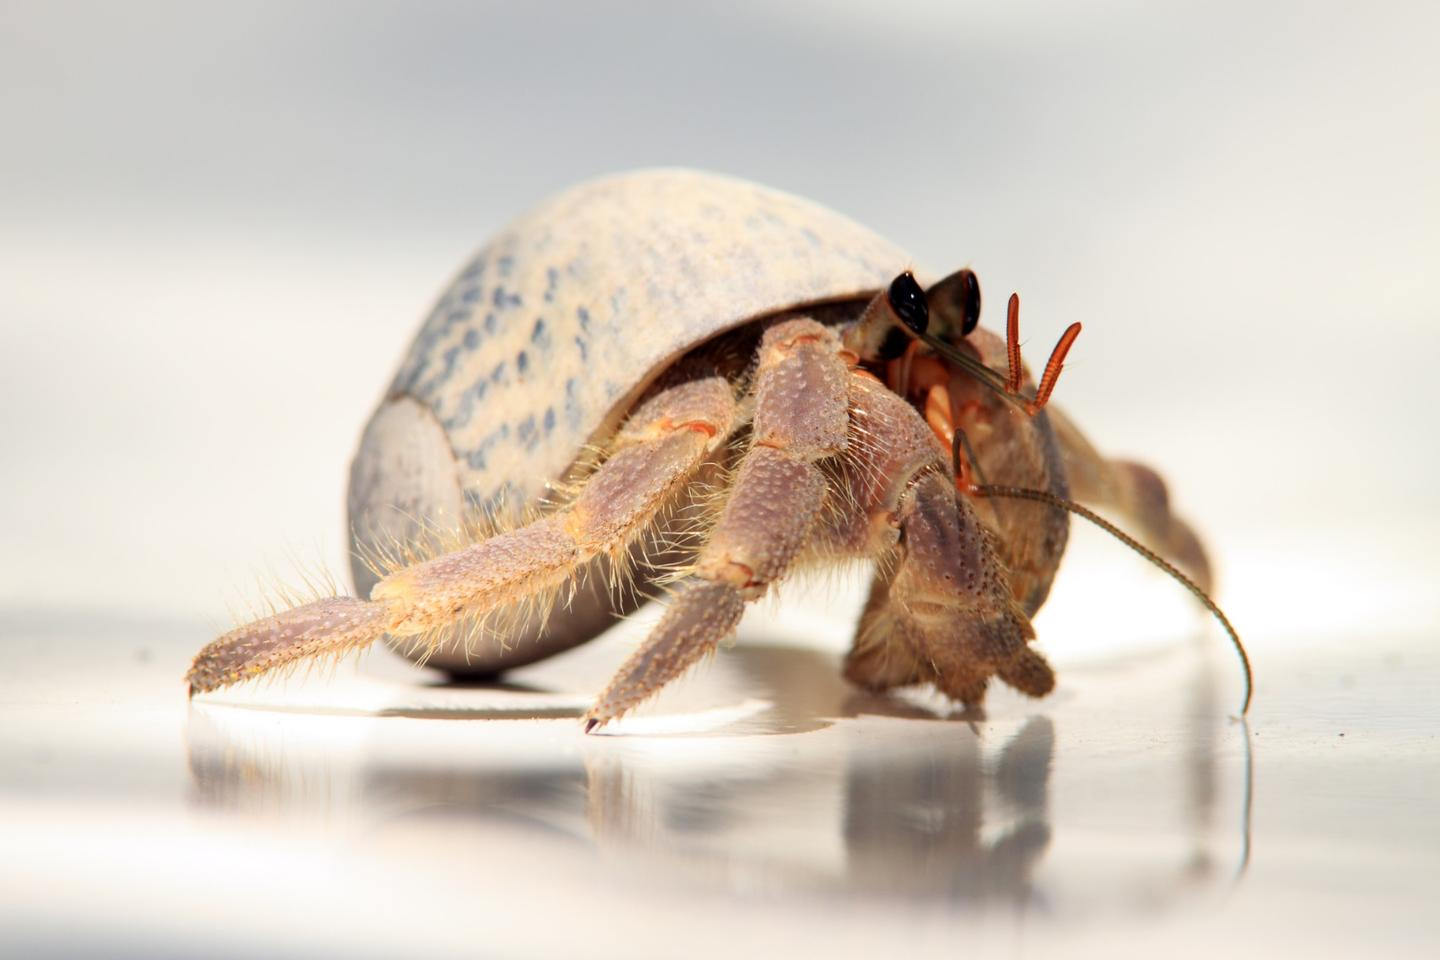 New research suggests that thelonger hermitcrabs spend modifying their shells, the longer their penises are likelyto be